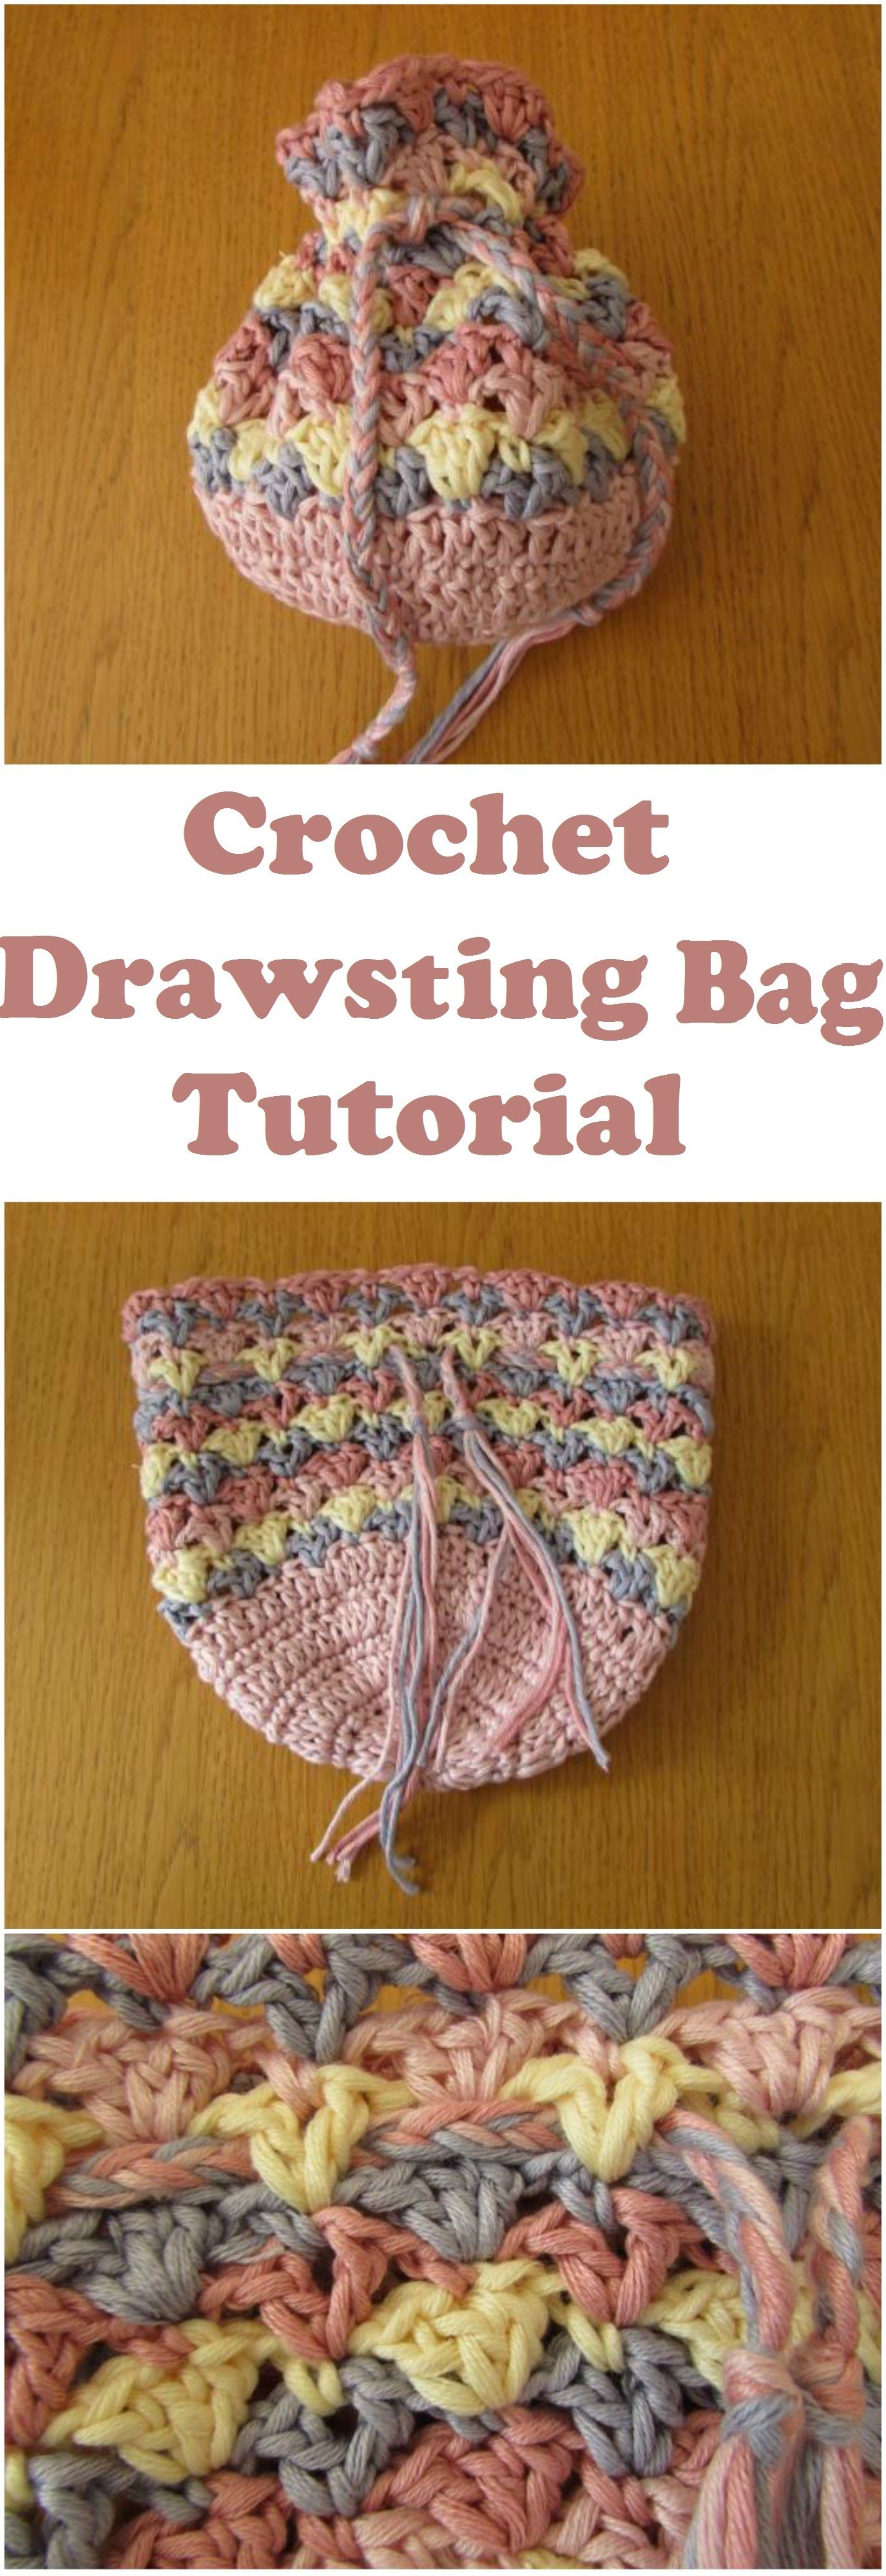 Crochet-Drawstring-Bag | Crochet Bags Totes & Purses | Pinterest ...